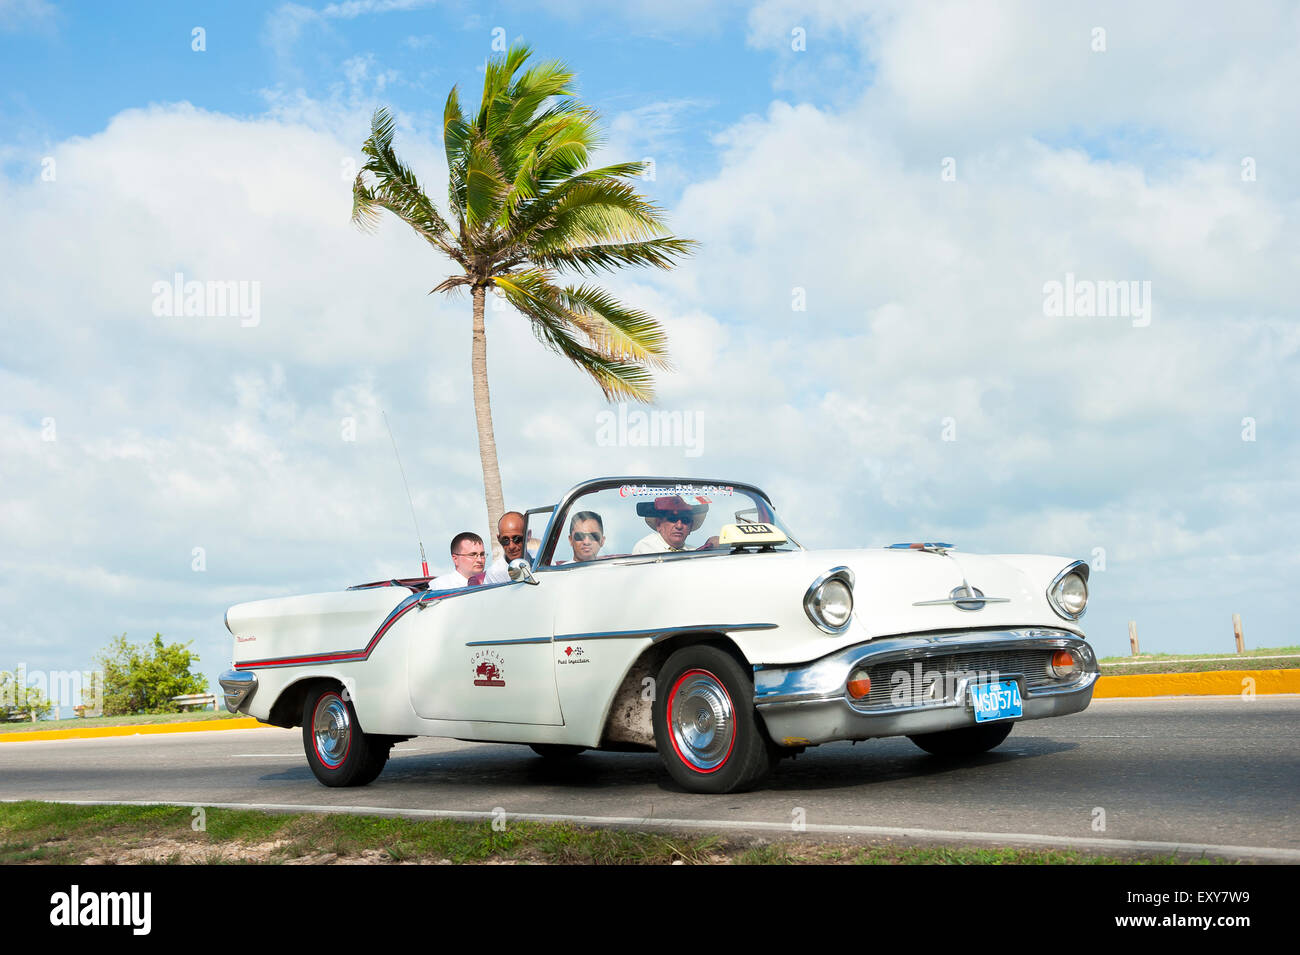 VARADERO, CUBA - JUNE 07, 2011: Tourists ride in white classic vintage American car driving on a coastal road with - Stock Image